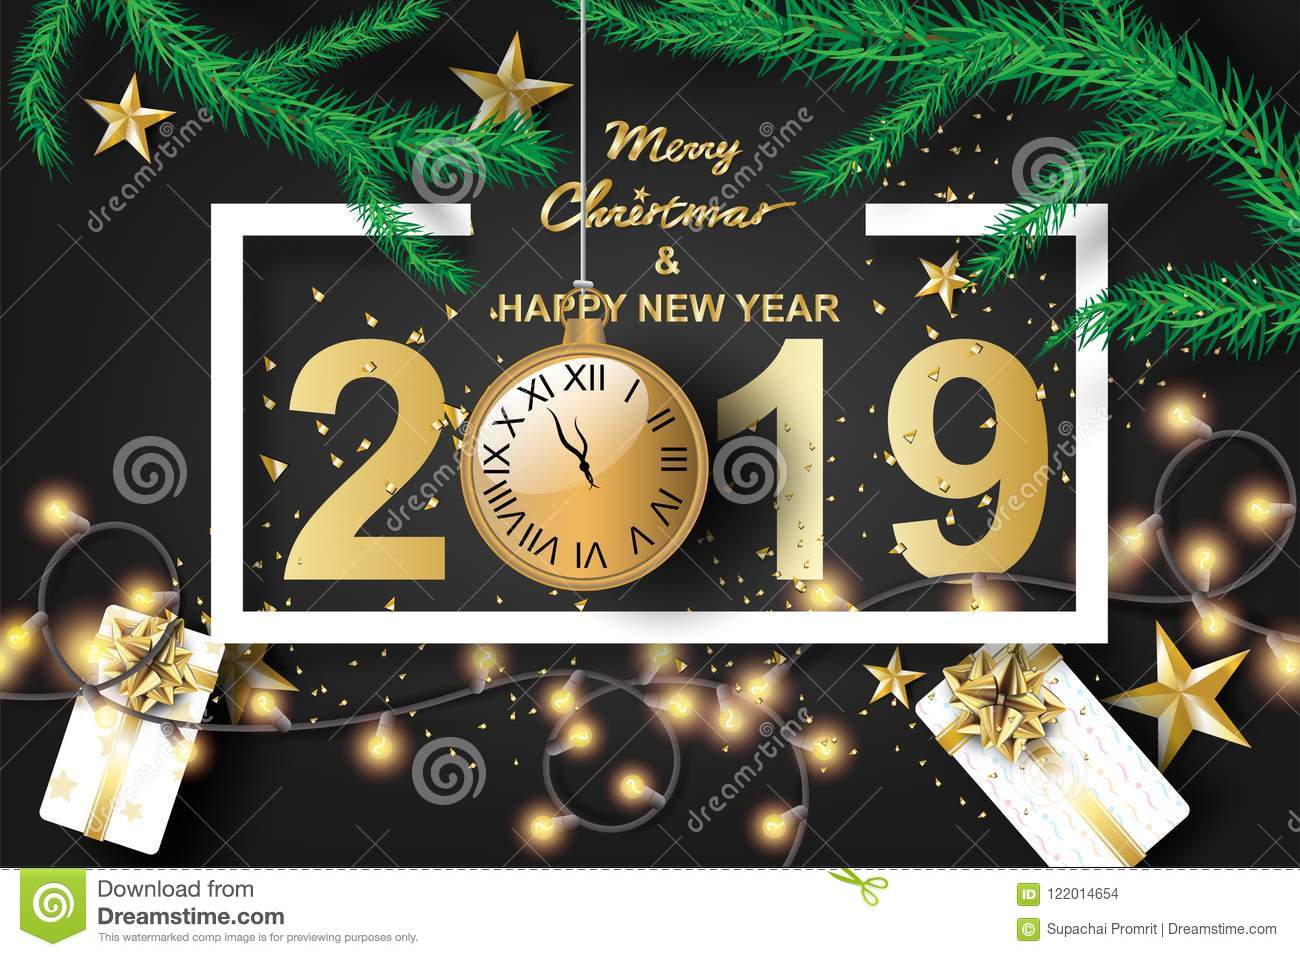 Paper Art Of Merry Christmas And Happy New Year 2019 With Black ...